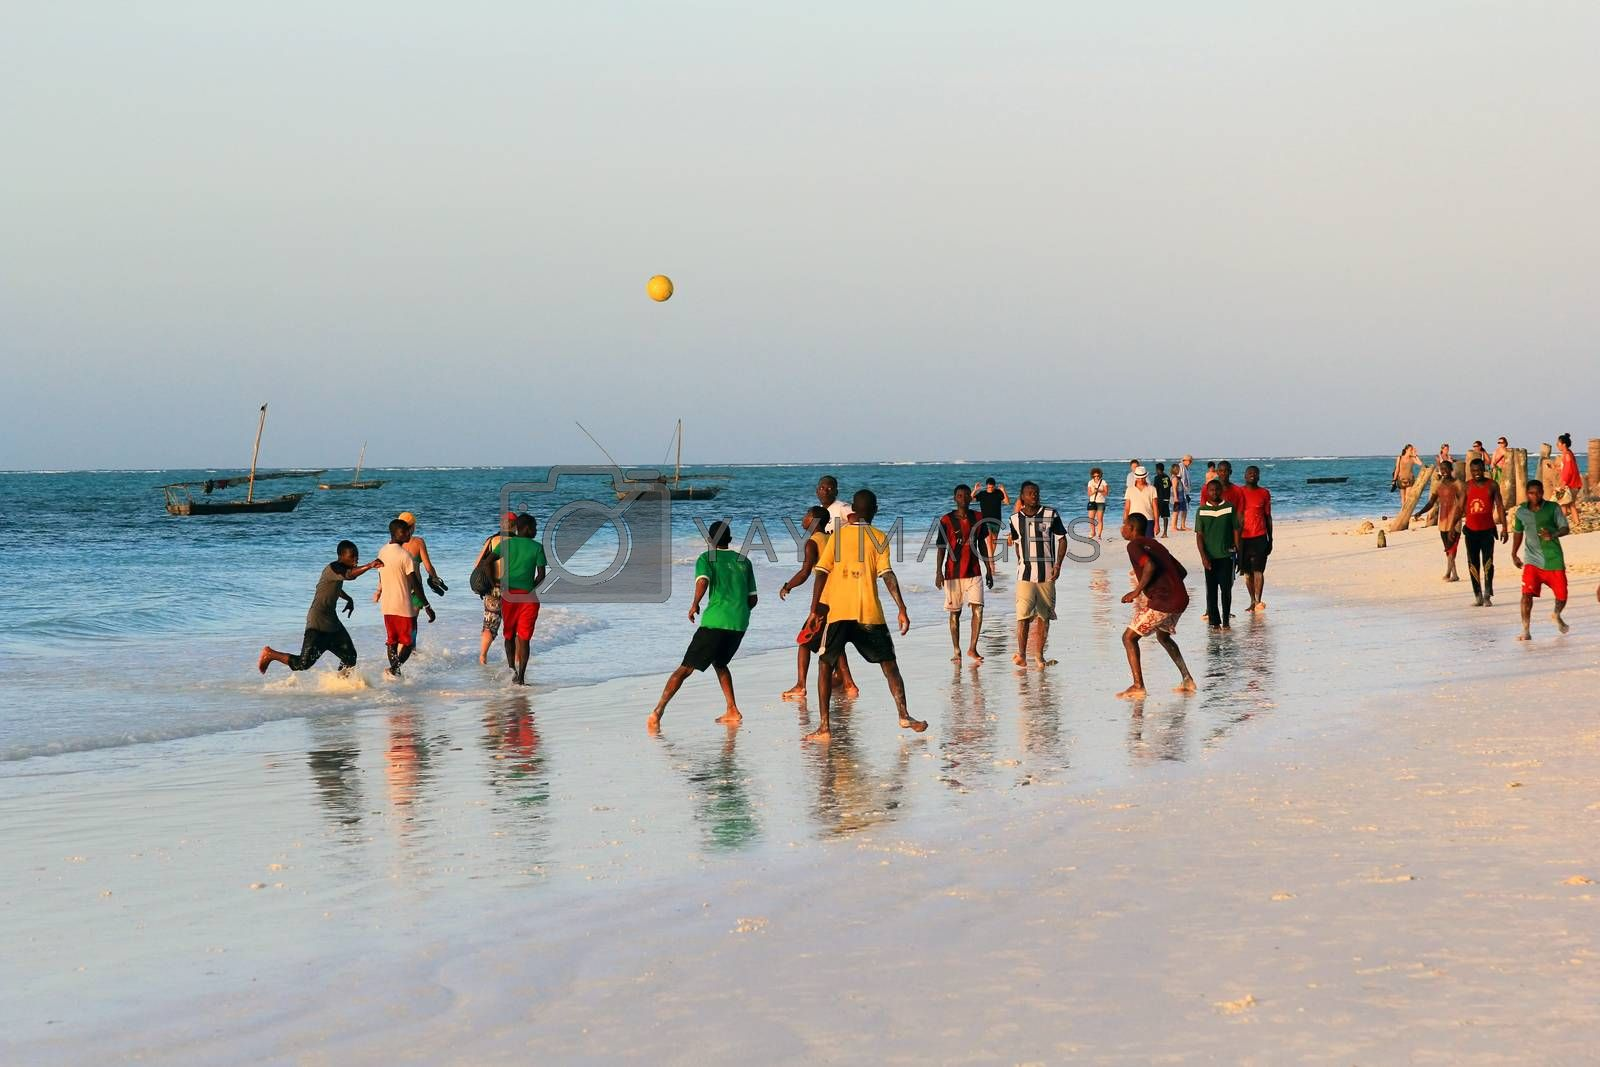 Zanzibar, Tanzania - January 4, 2016: A game of football on the beach at sunset in Nungwi. Zanzibar, Tanzania